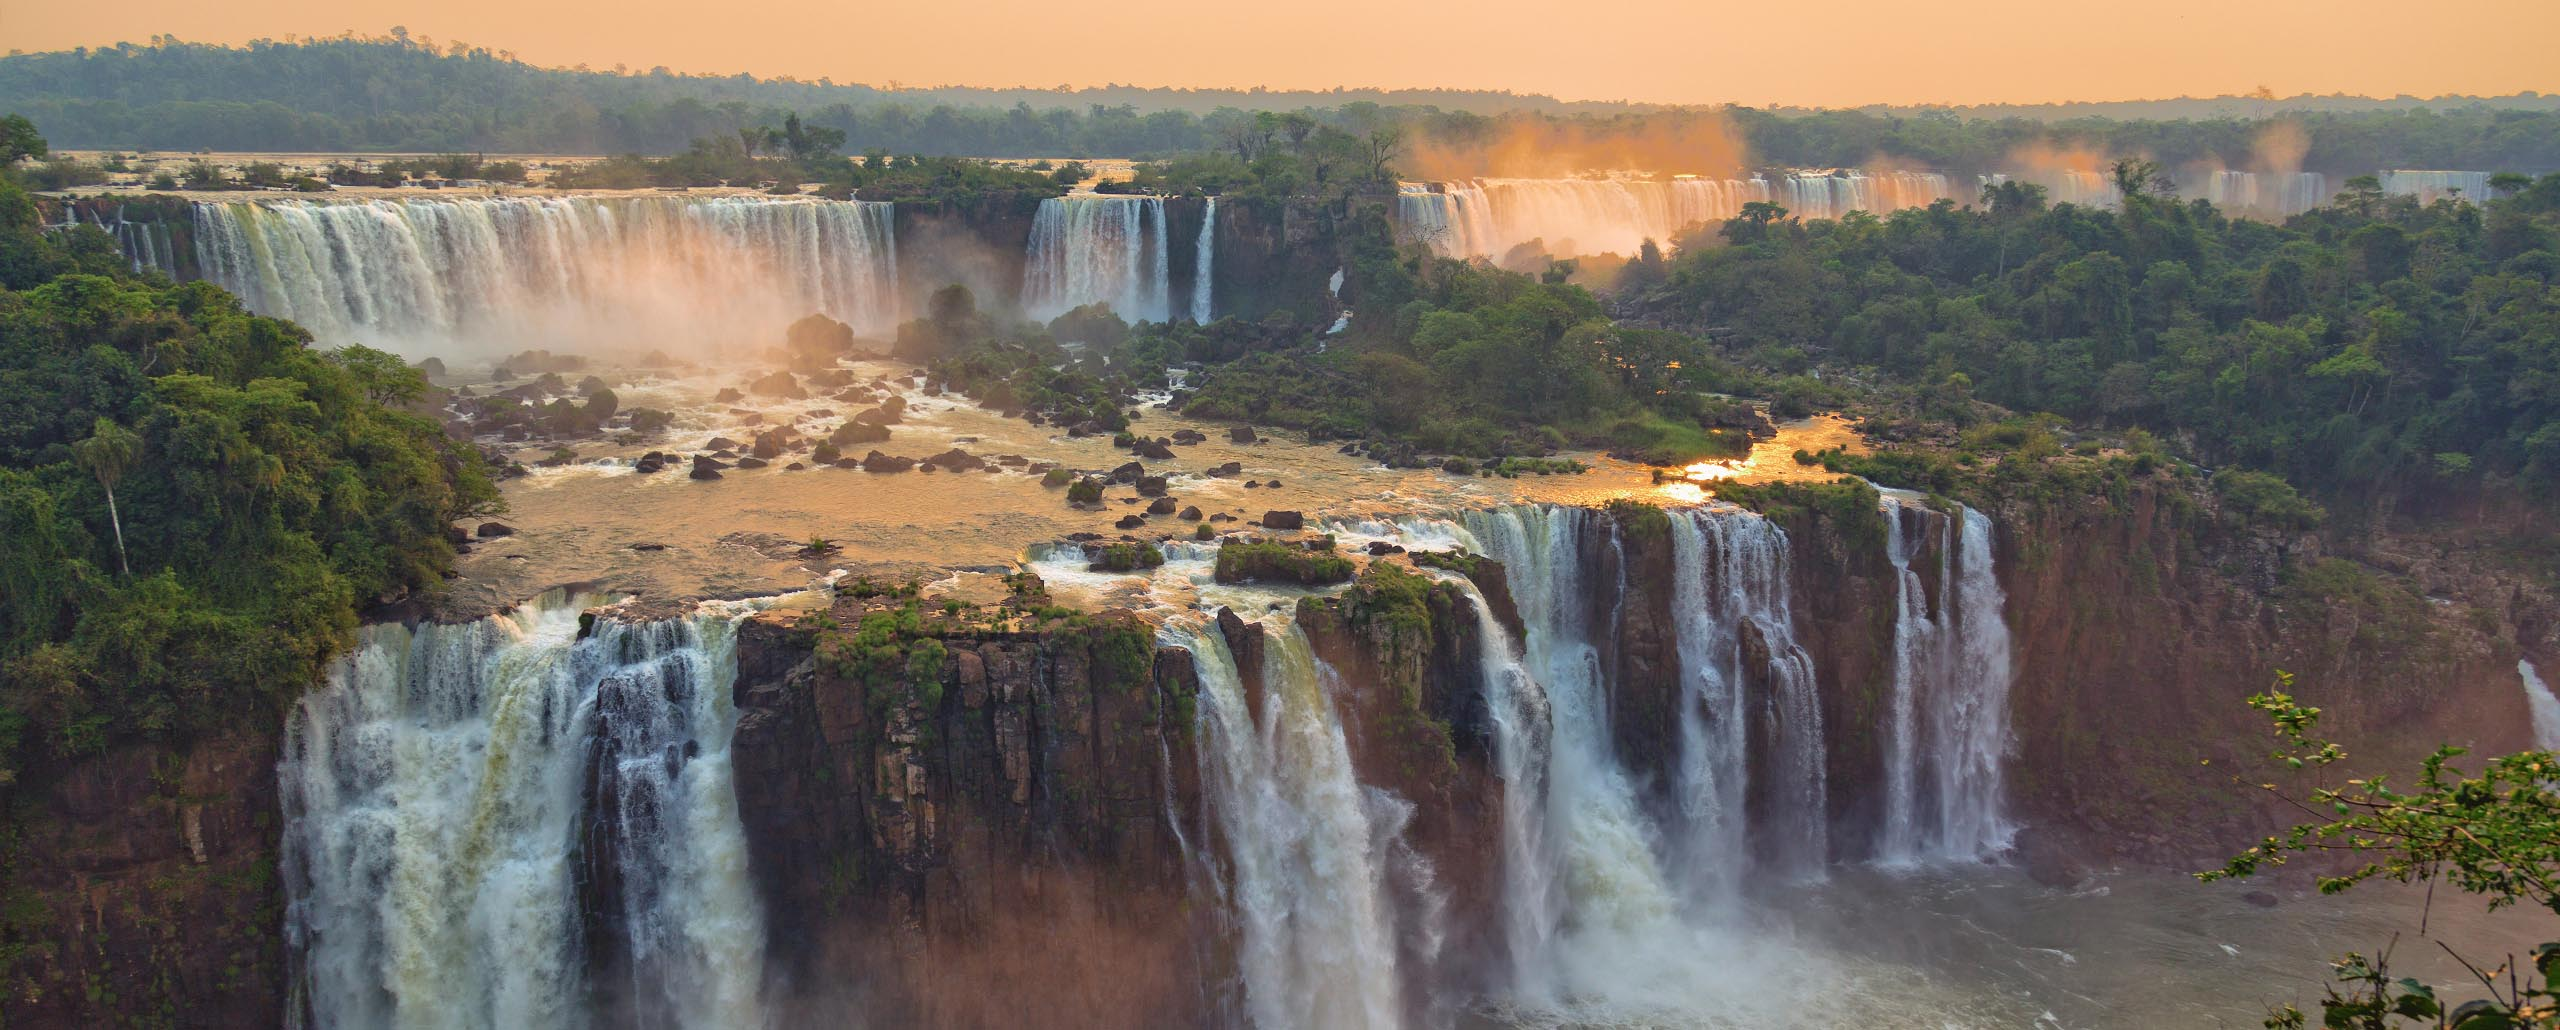 How best to experience the Iguazú Falls